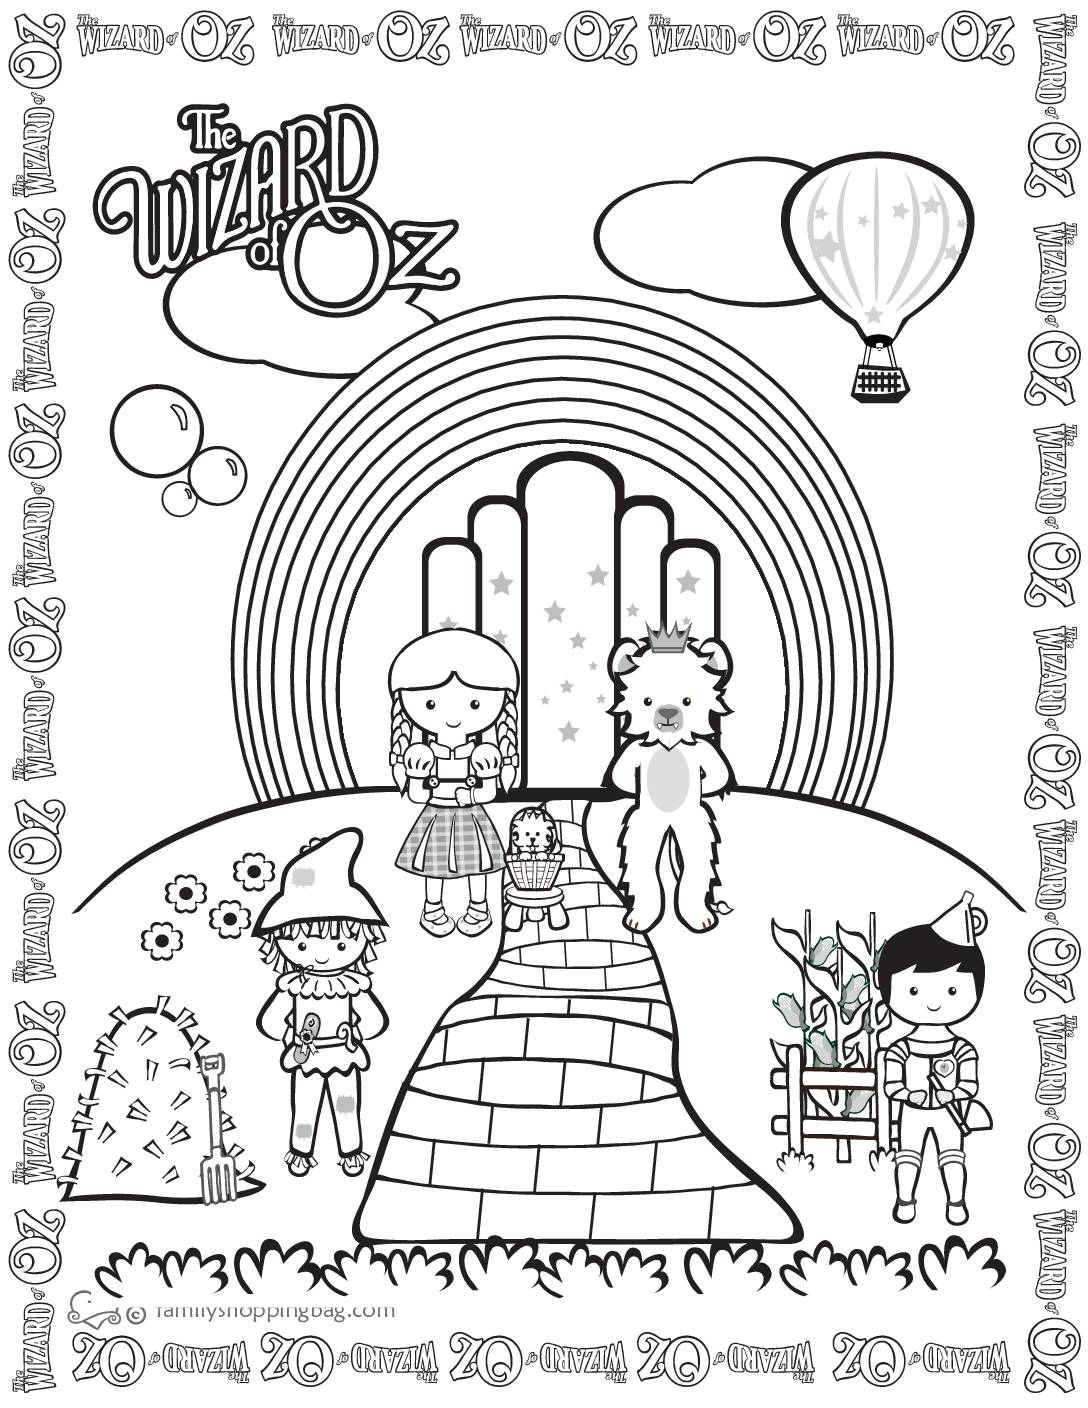 Coloring Page Wizard of Oz